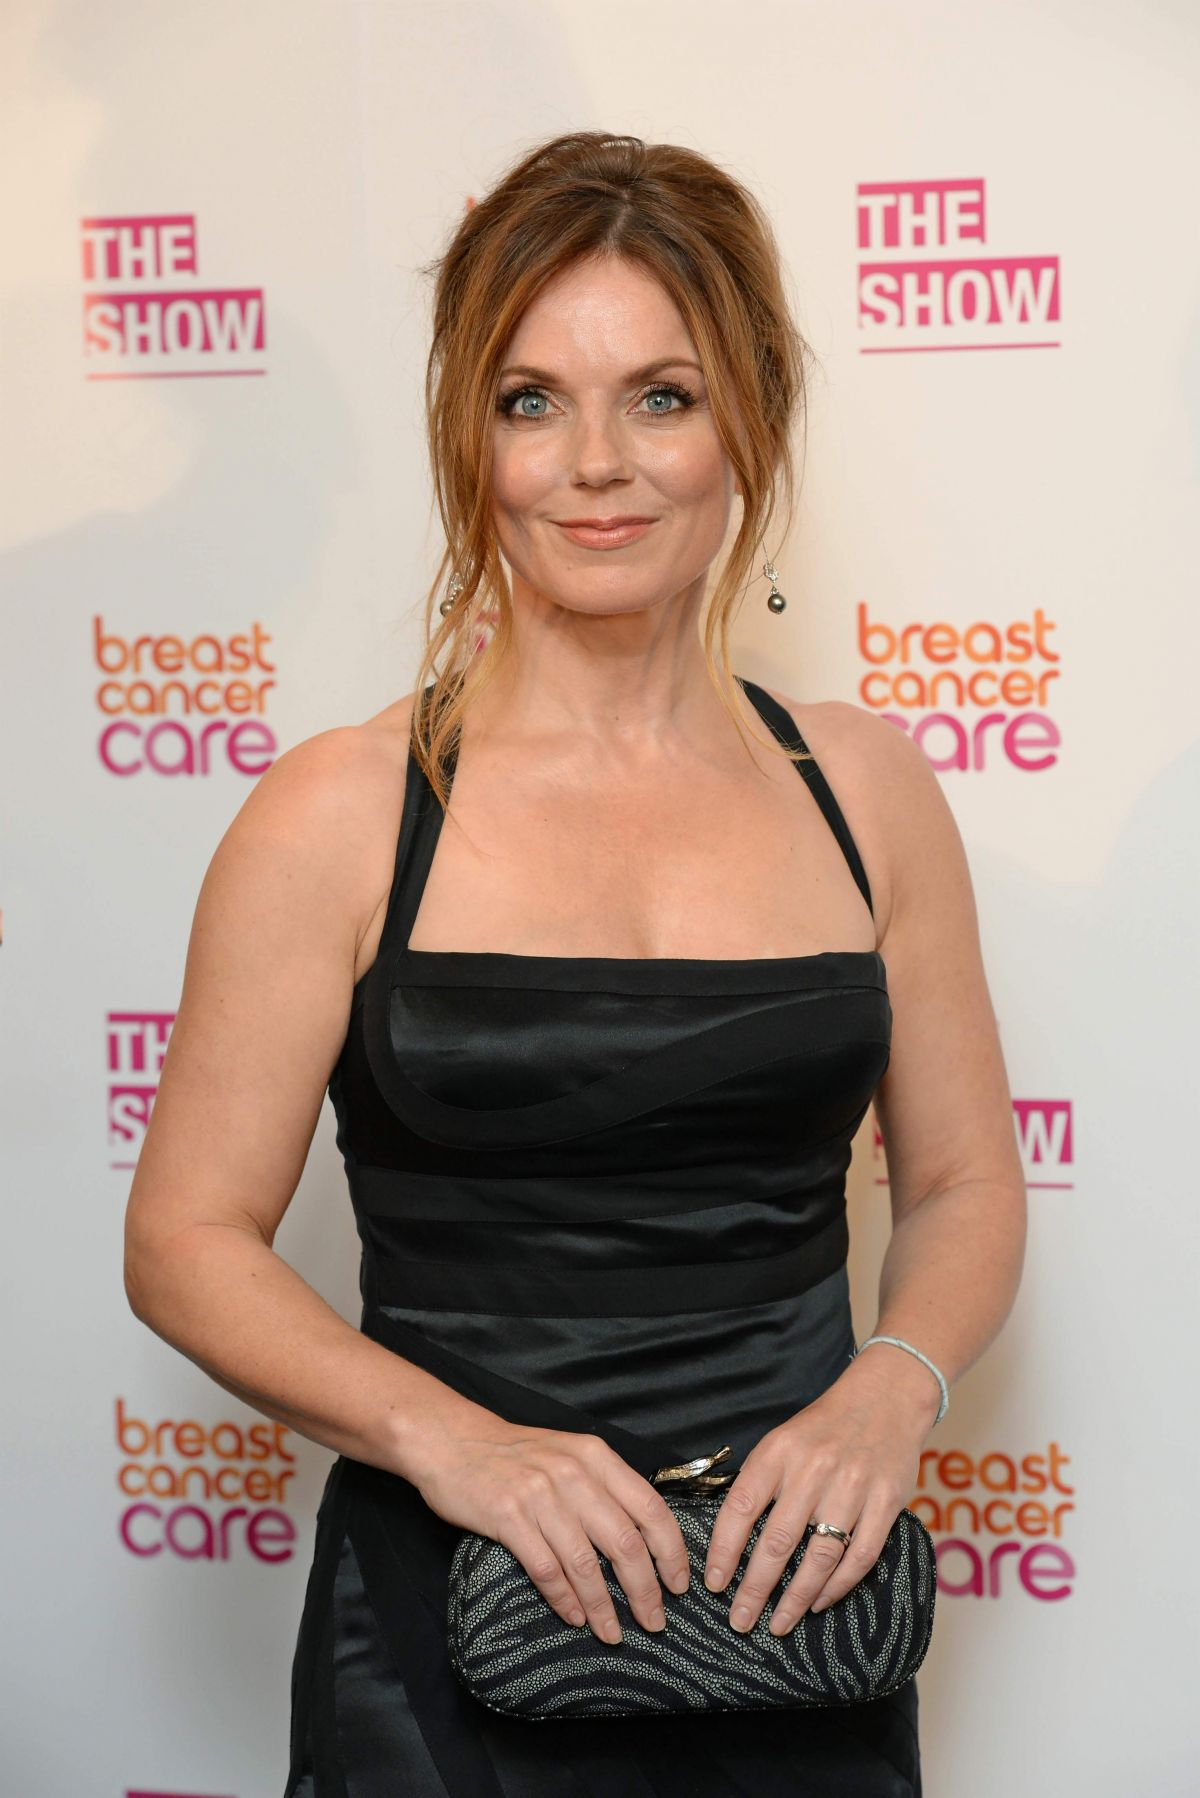 Geri Halliwell At The Breast Cancer Care Fashion Show